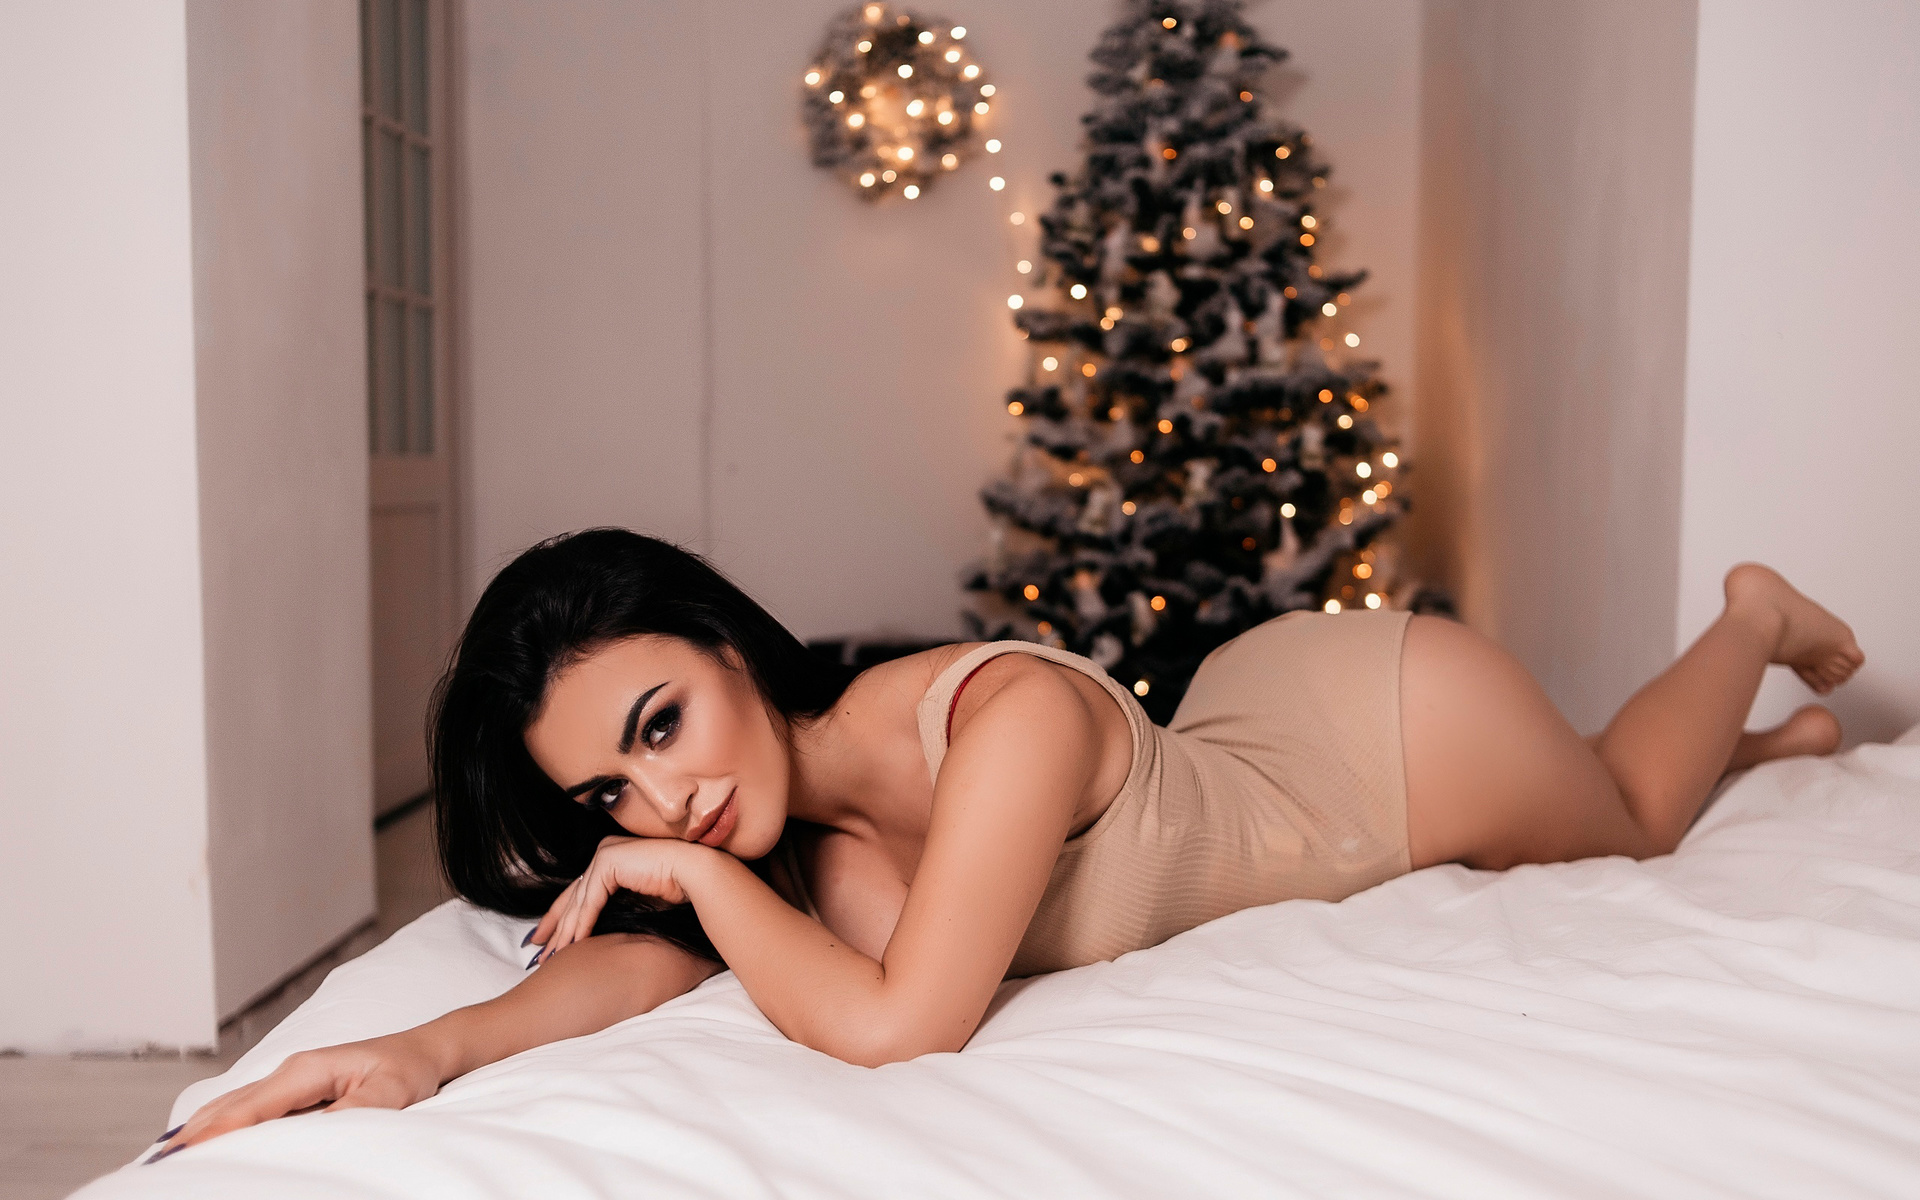 women, christmas tree, ass, bodysuit, in bed, smiling, women indoors, lying on front, christmas, brunette